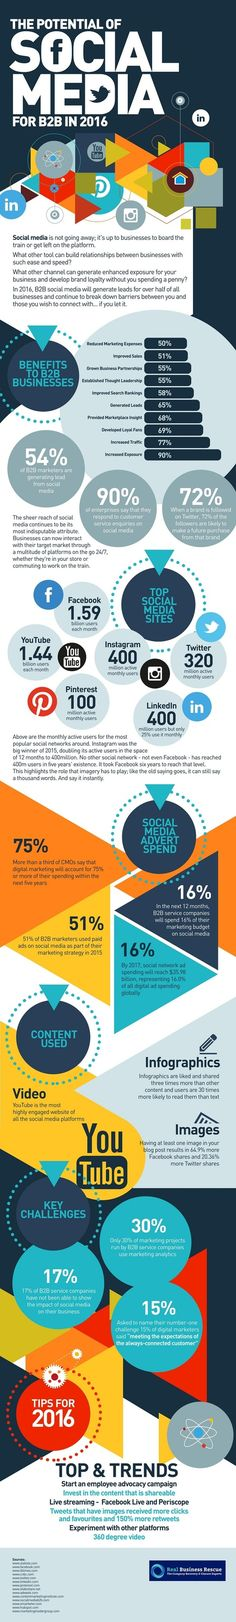 The Potential of Social Media for B2B in 2016 #Infographic | MarketingHits | Scoop.it